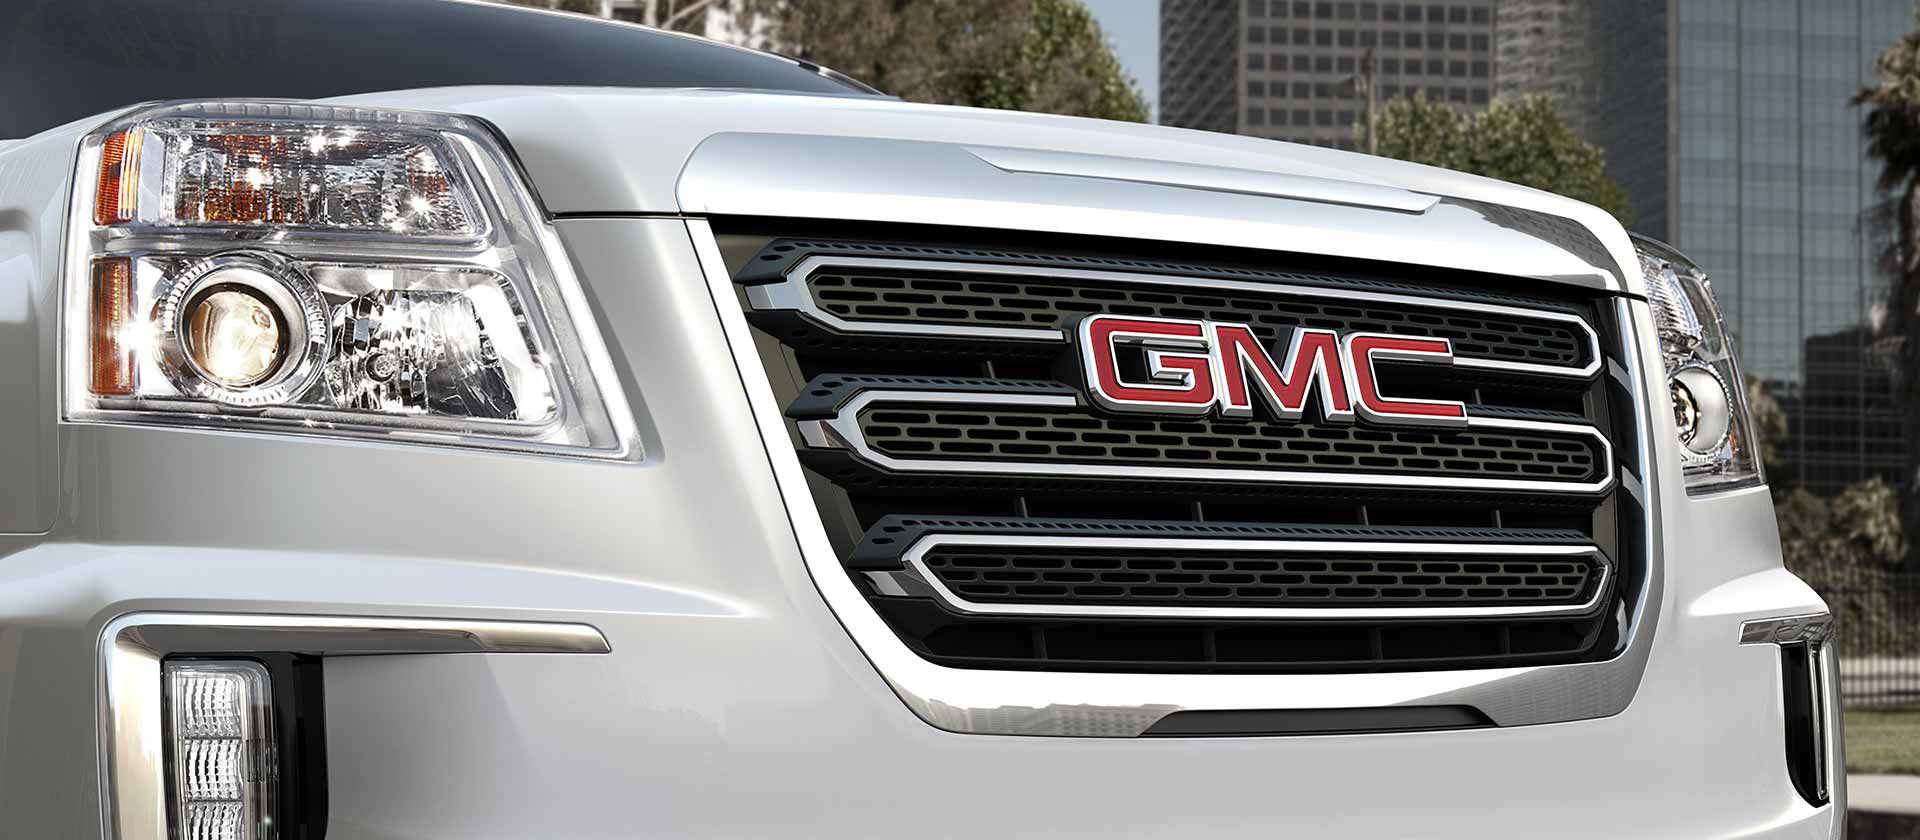 How to Read Those Stickers on Car Windows - Cardinale GMC